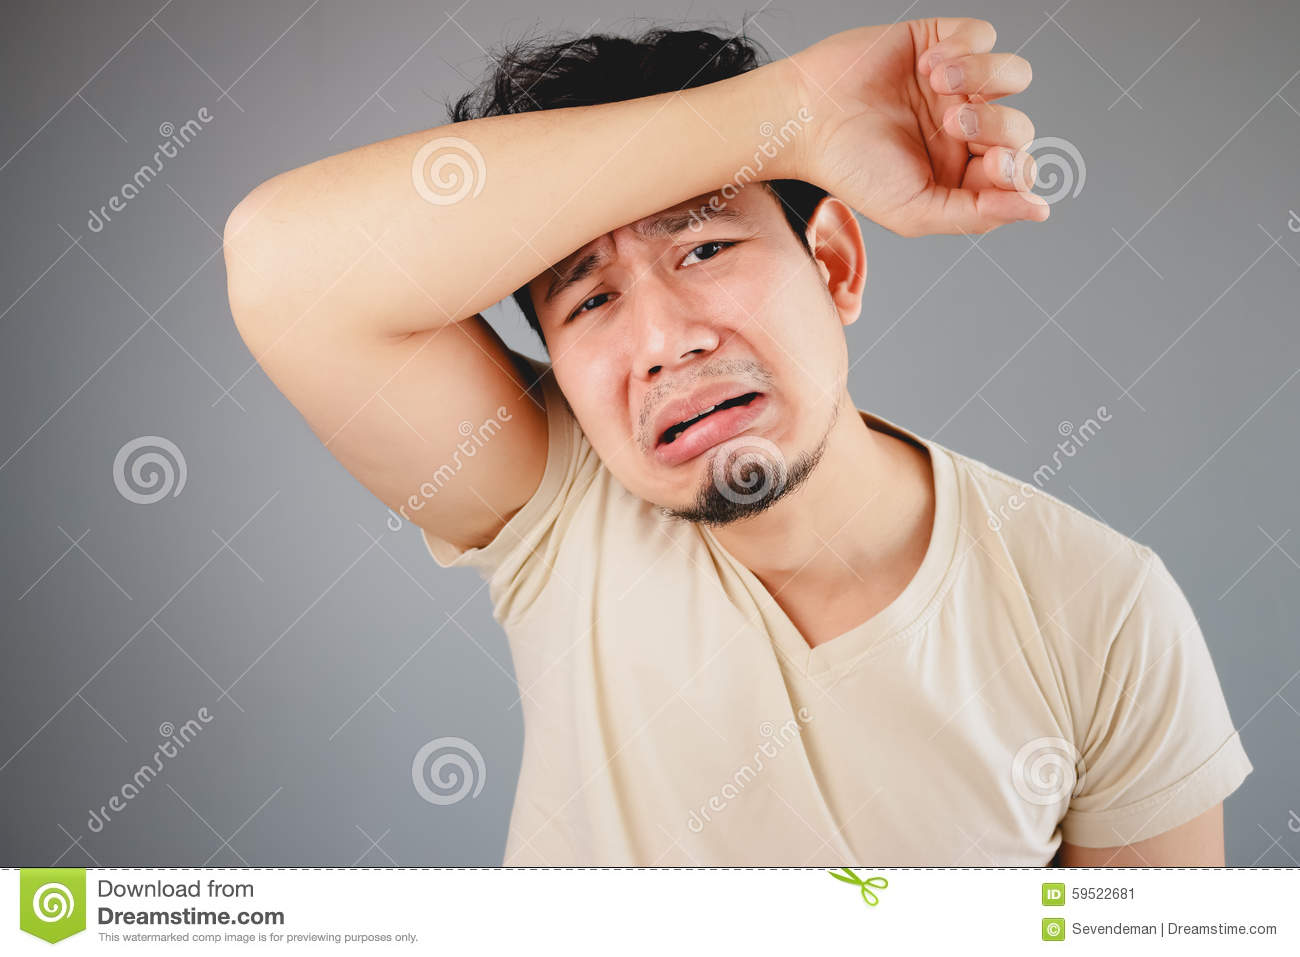 sad asian man  stock image  image of person  people  handsome